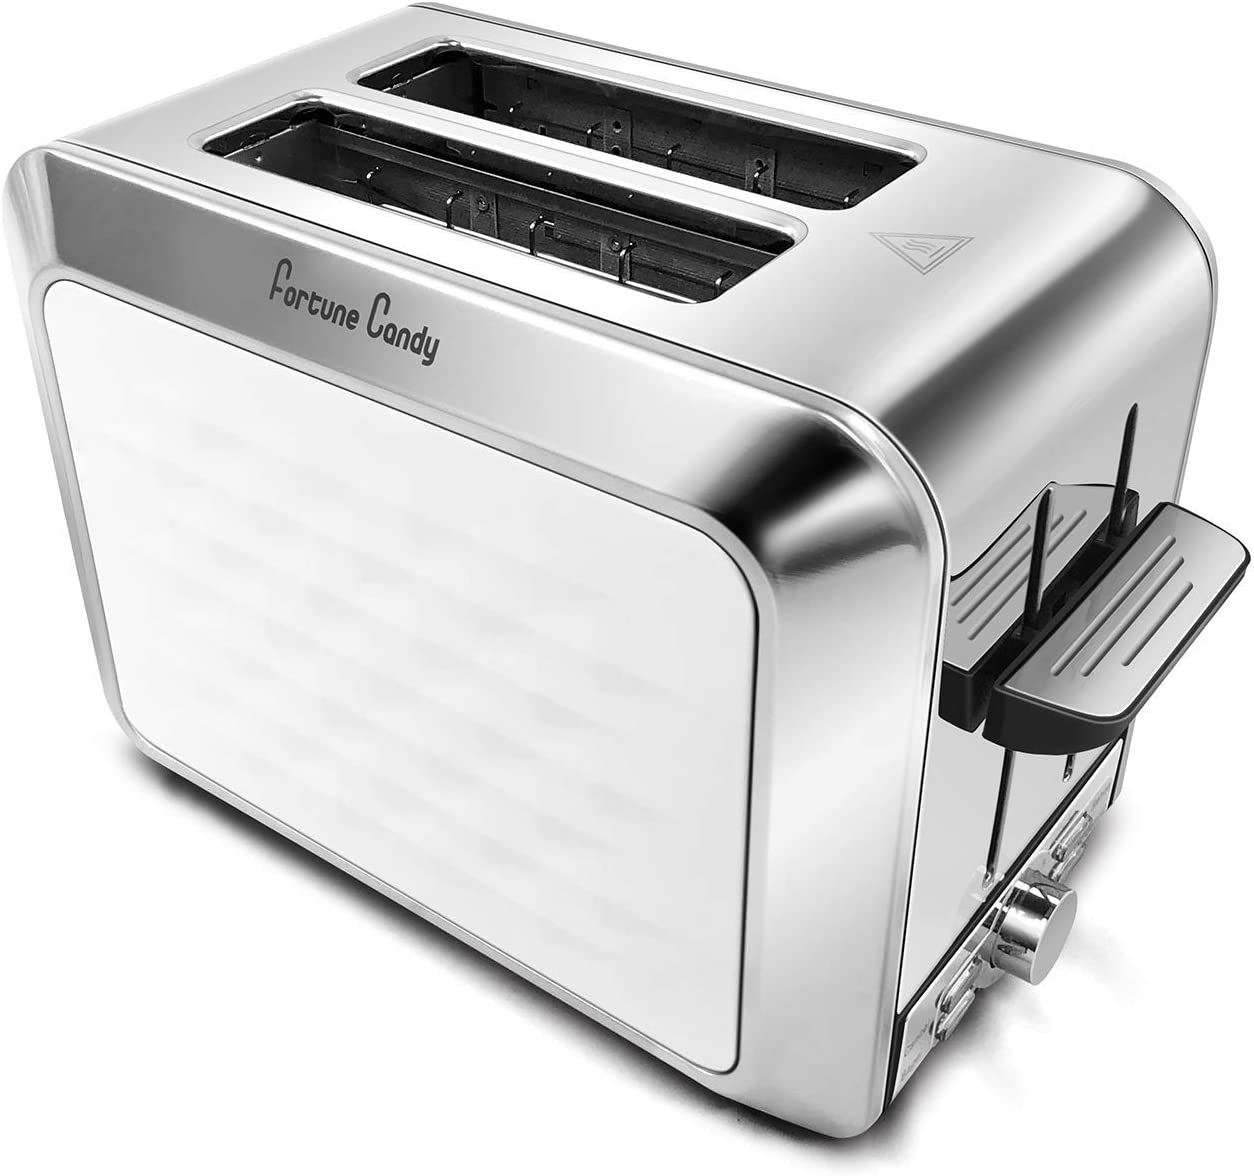 Fortune Candy Toaster, Diamond Pattern, 2 Slice, Stainless Steel, Toaster for Bagels, Wide Slots Toaster (White)